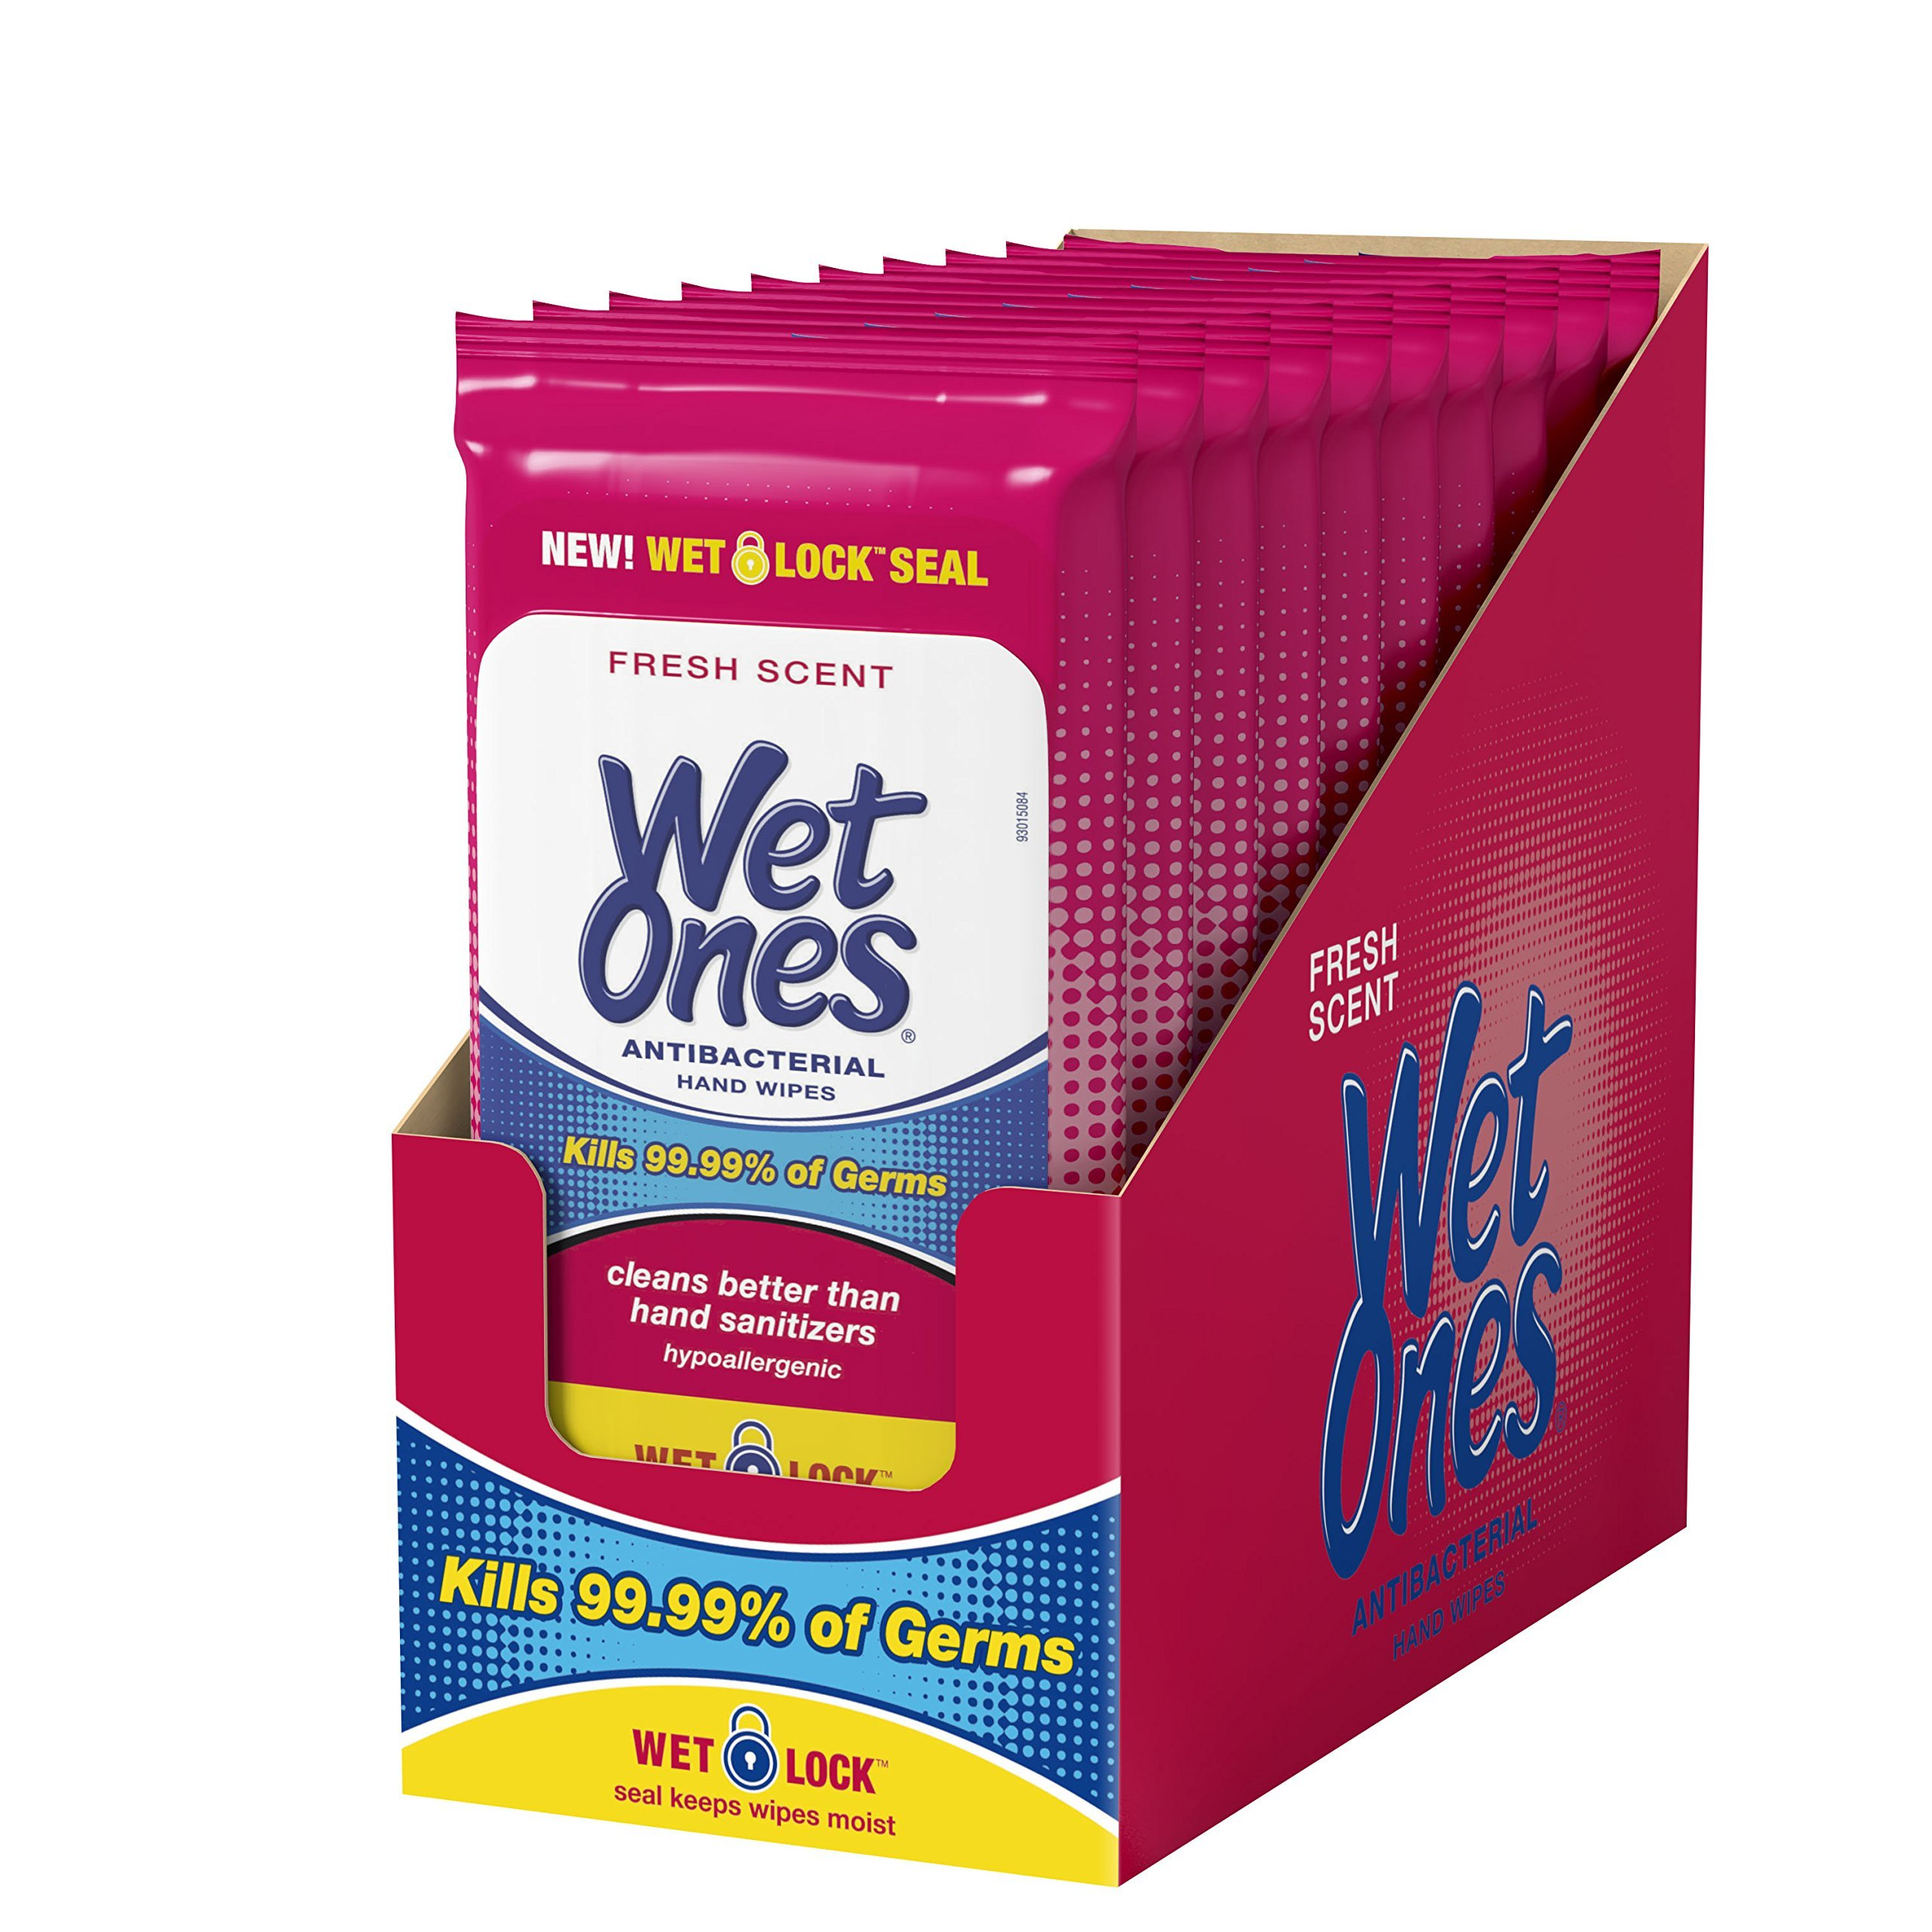 Wet Ones Antibacterial Hand Wipes, 20 Count (Pack Of 10) by Wet Ones